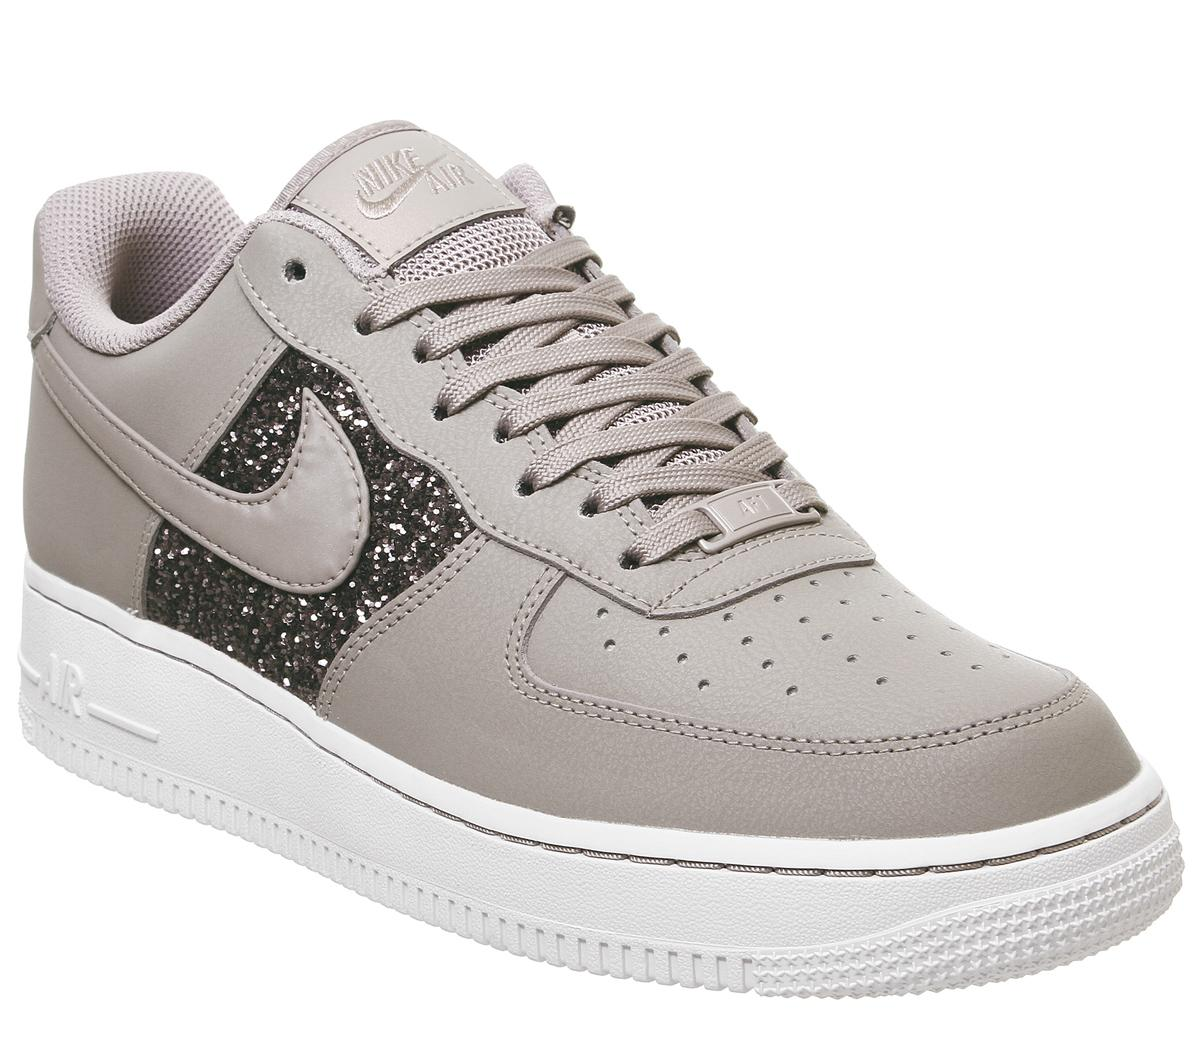 Nike Air Force 1 07 Trainers Smokey Mauve Gum Hers trainers